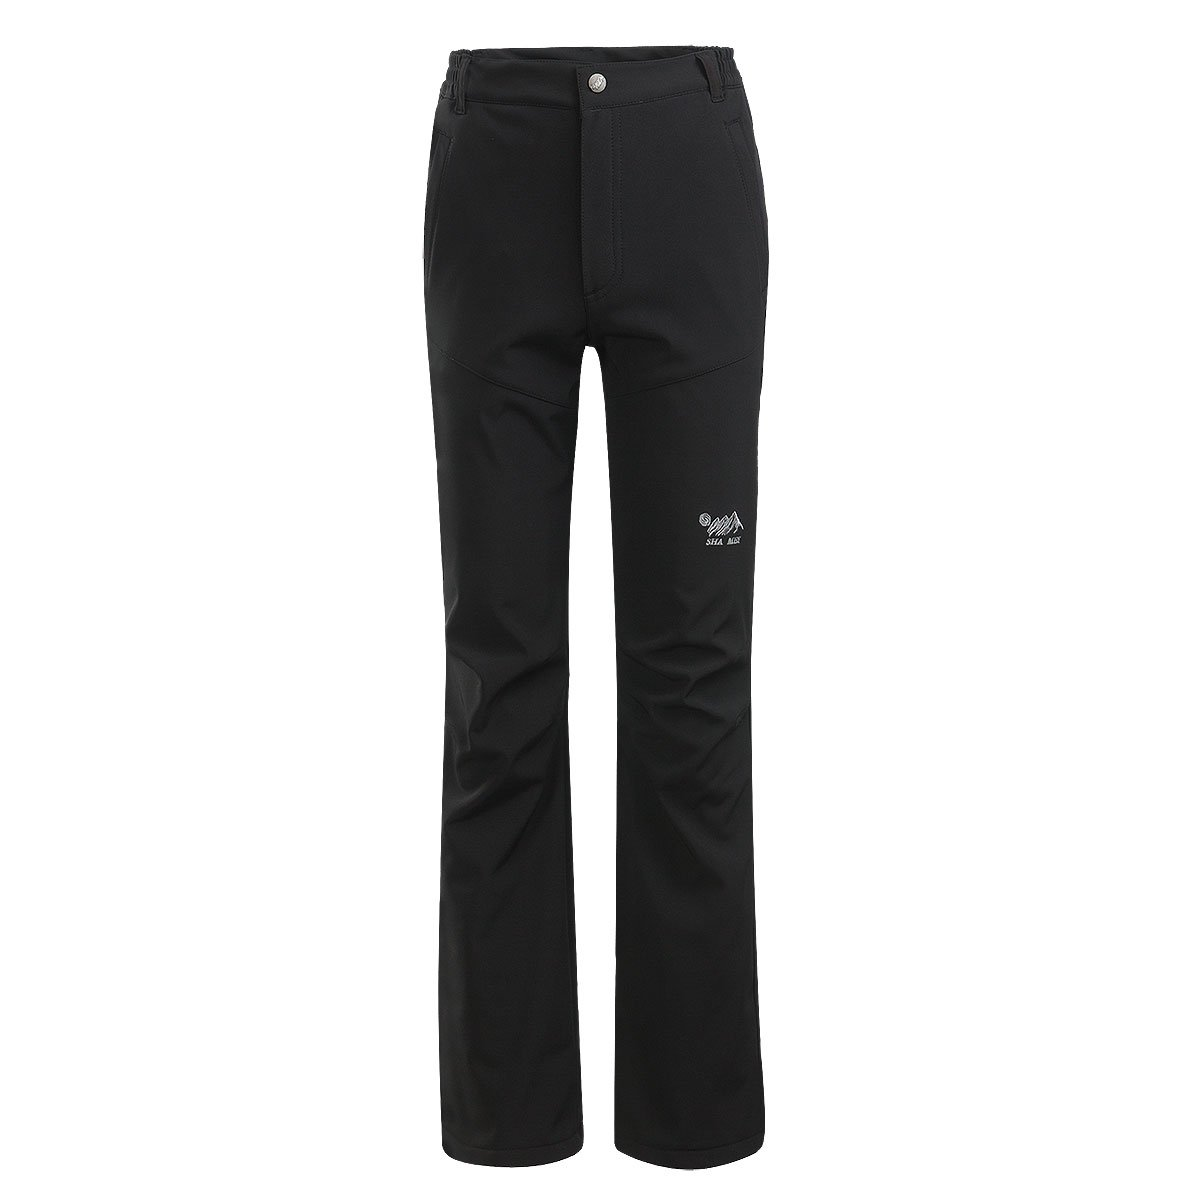 SHA MEI Women's Water Resistant Comfort Loose Long Outdoor Casual Sports Pants (Large, Black)